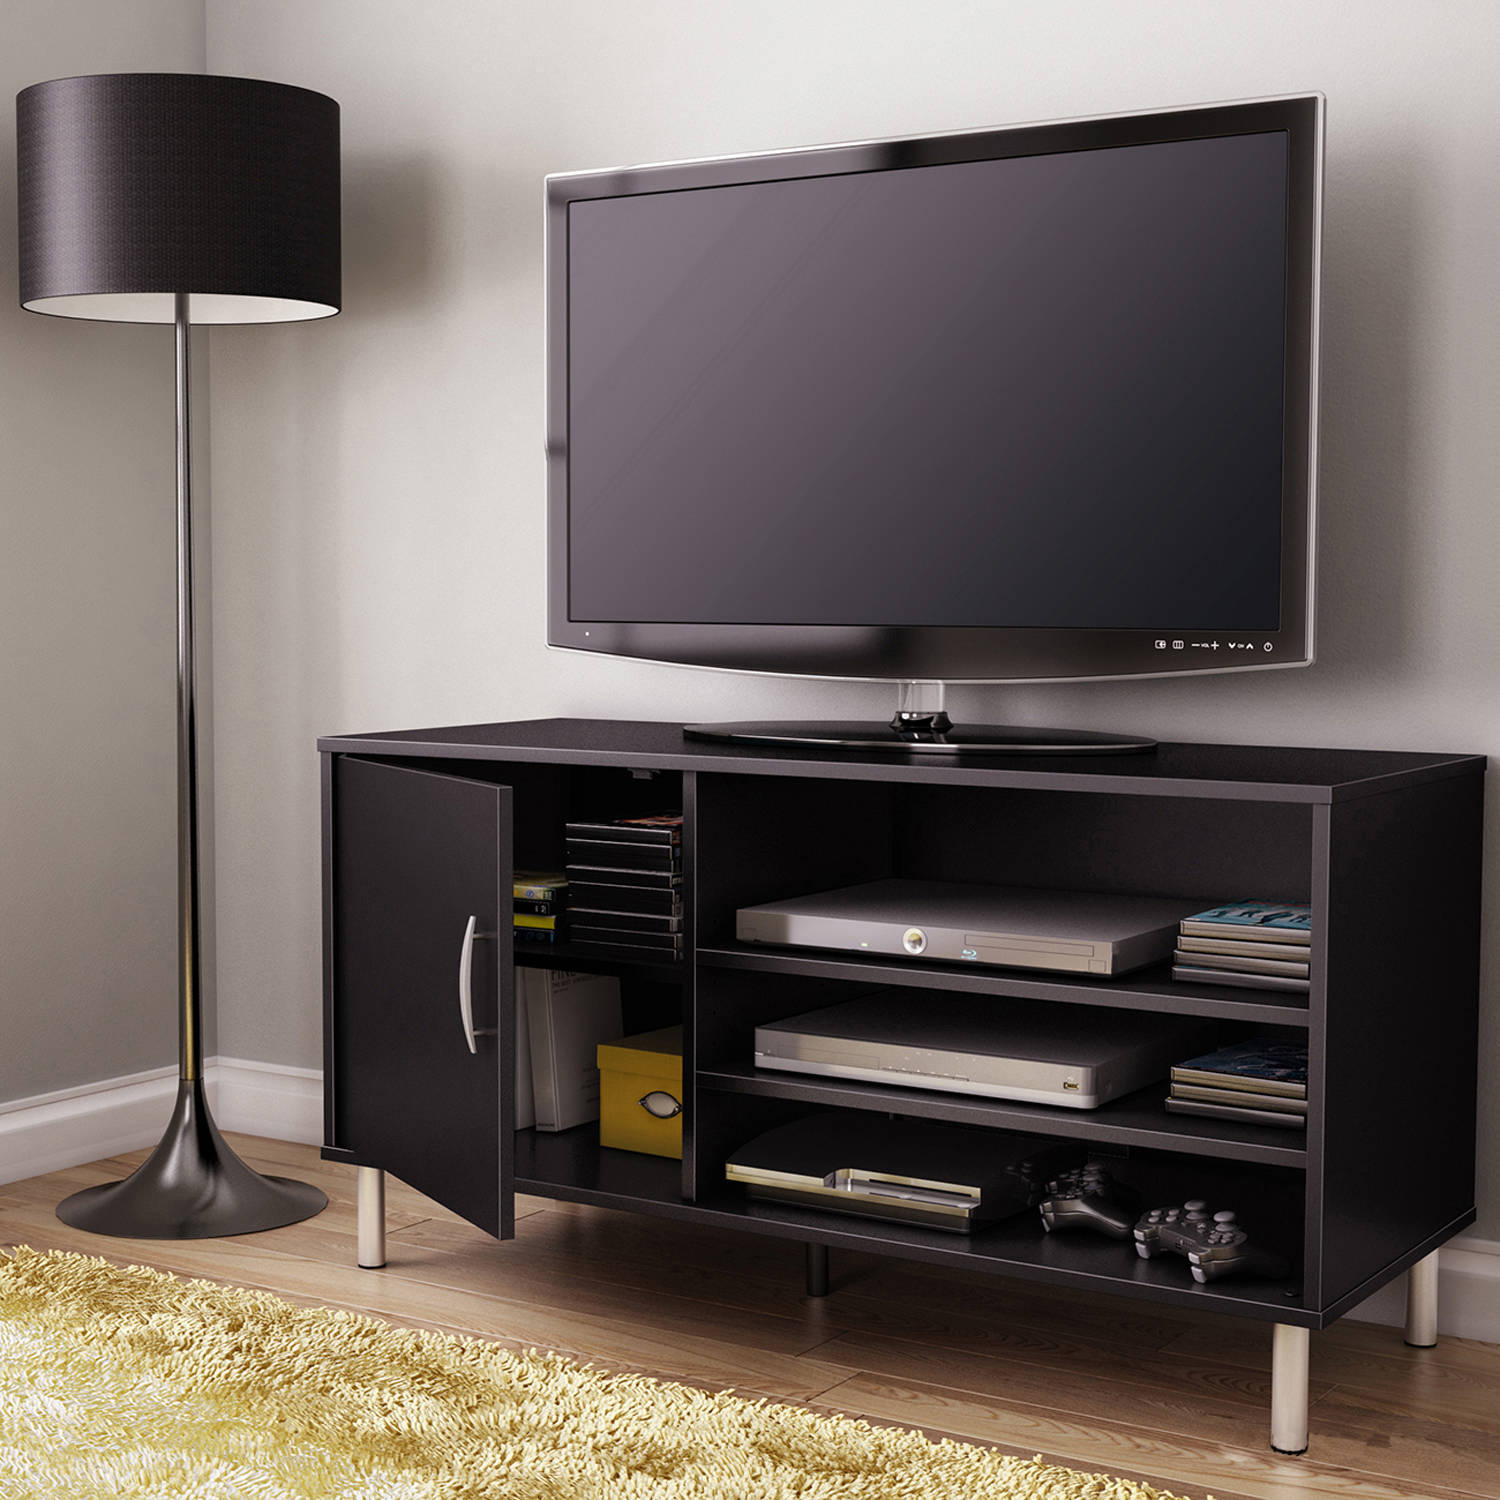 "South Shore Renta TV Stand with Door for TVs up to 48"", Multiple Colors"